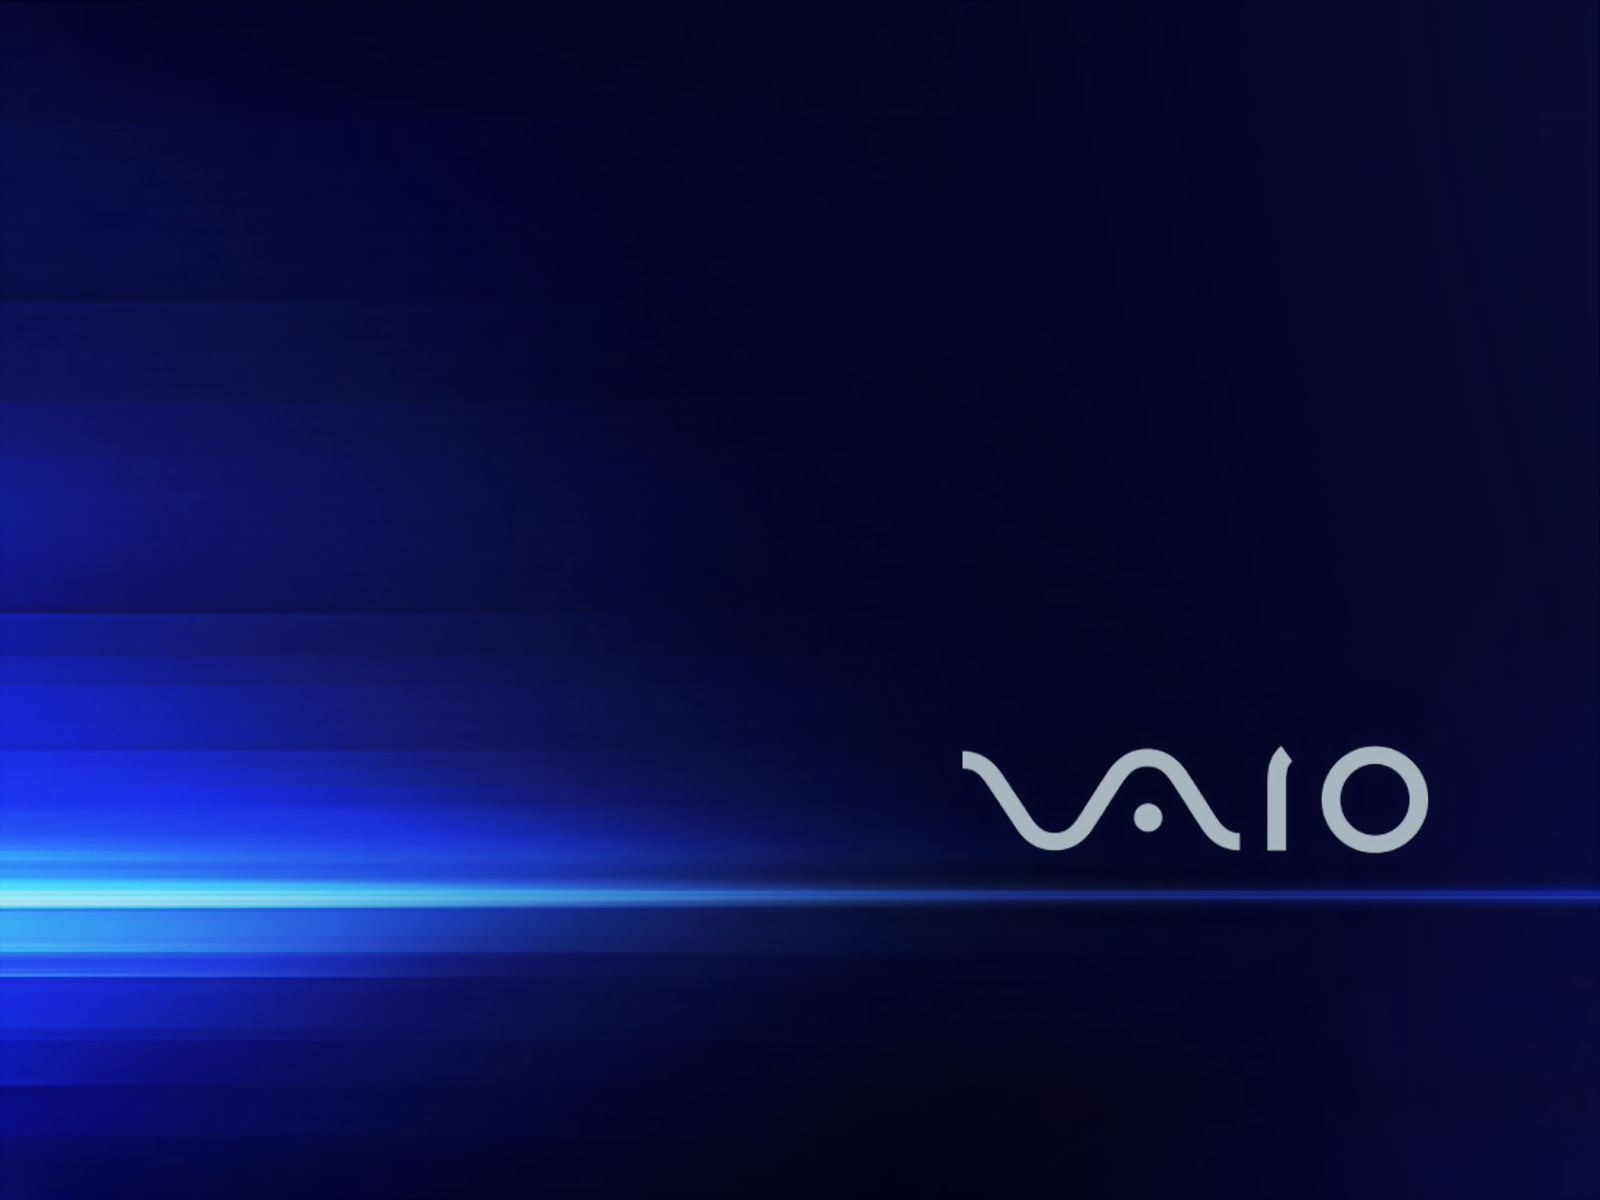 Vaio Wall Paper Black: Sony Vaio Wallpaper